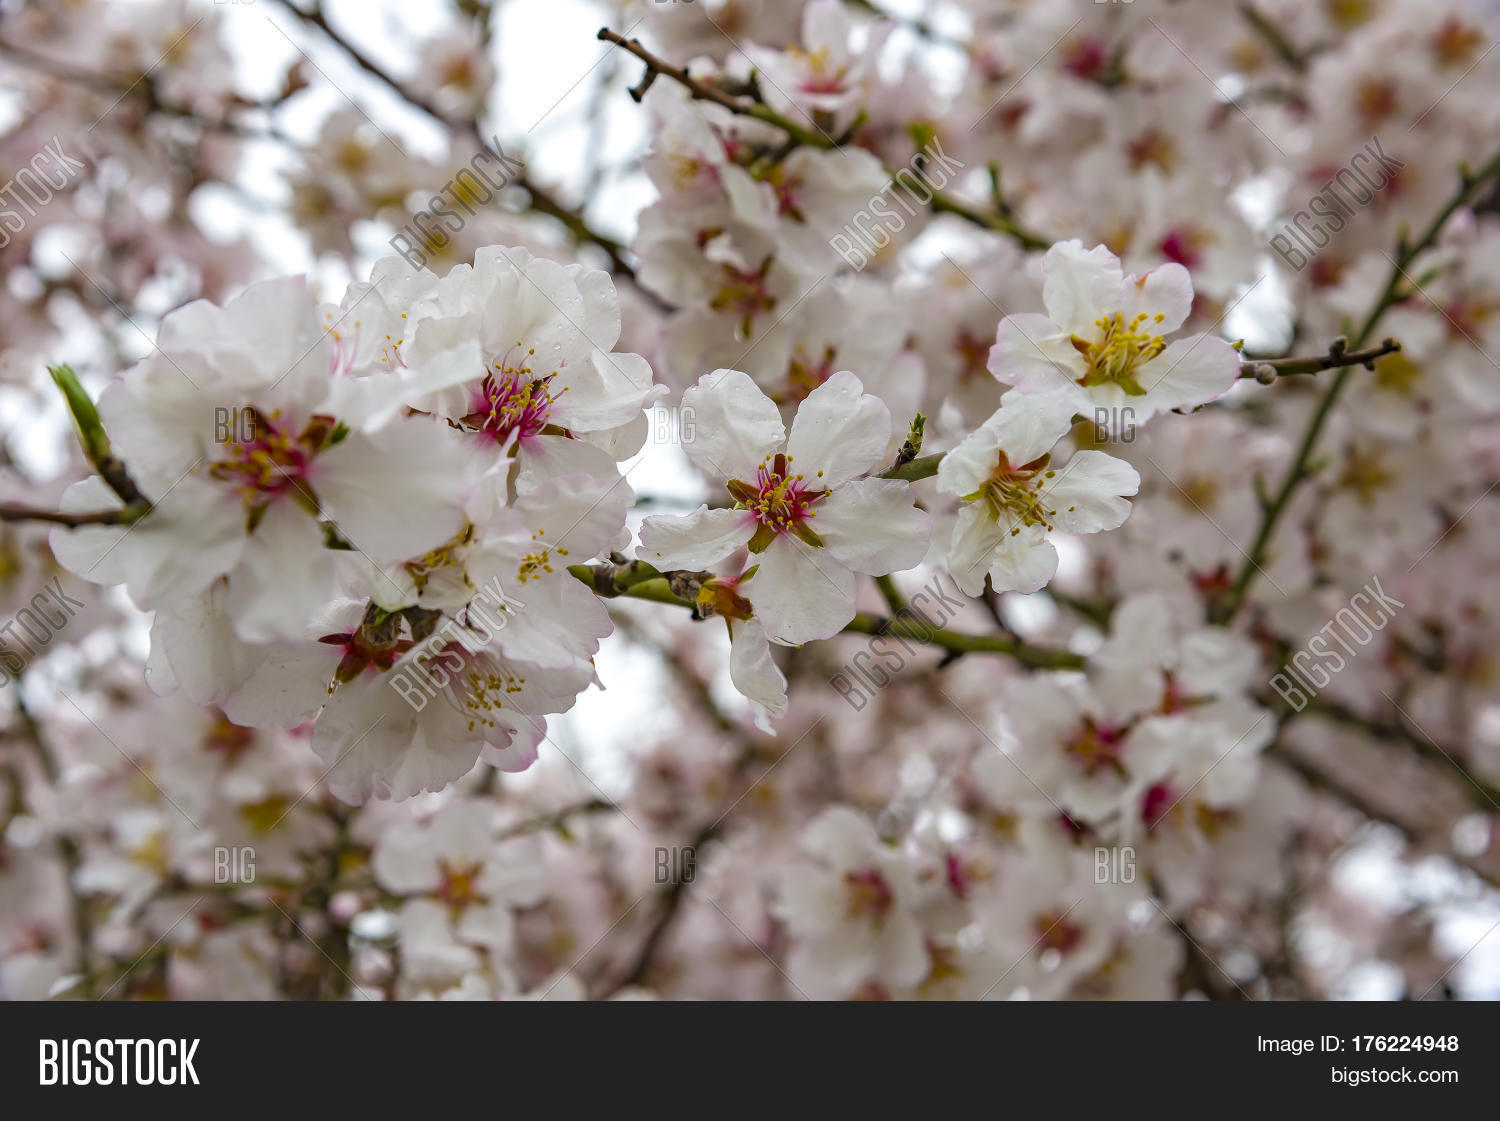 view almond tree image photo free trial bigstock